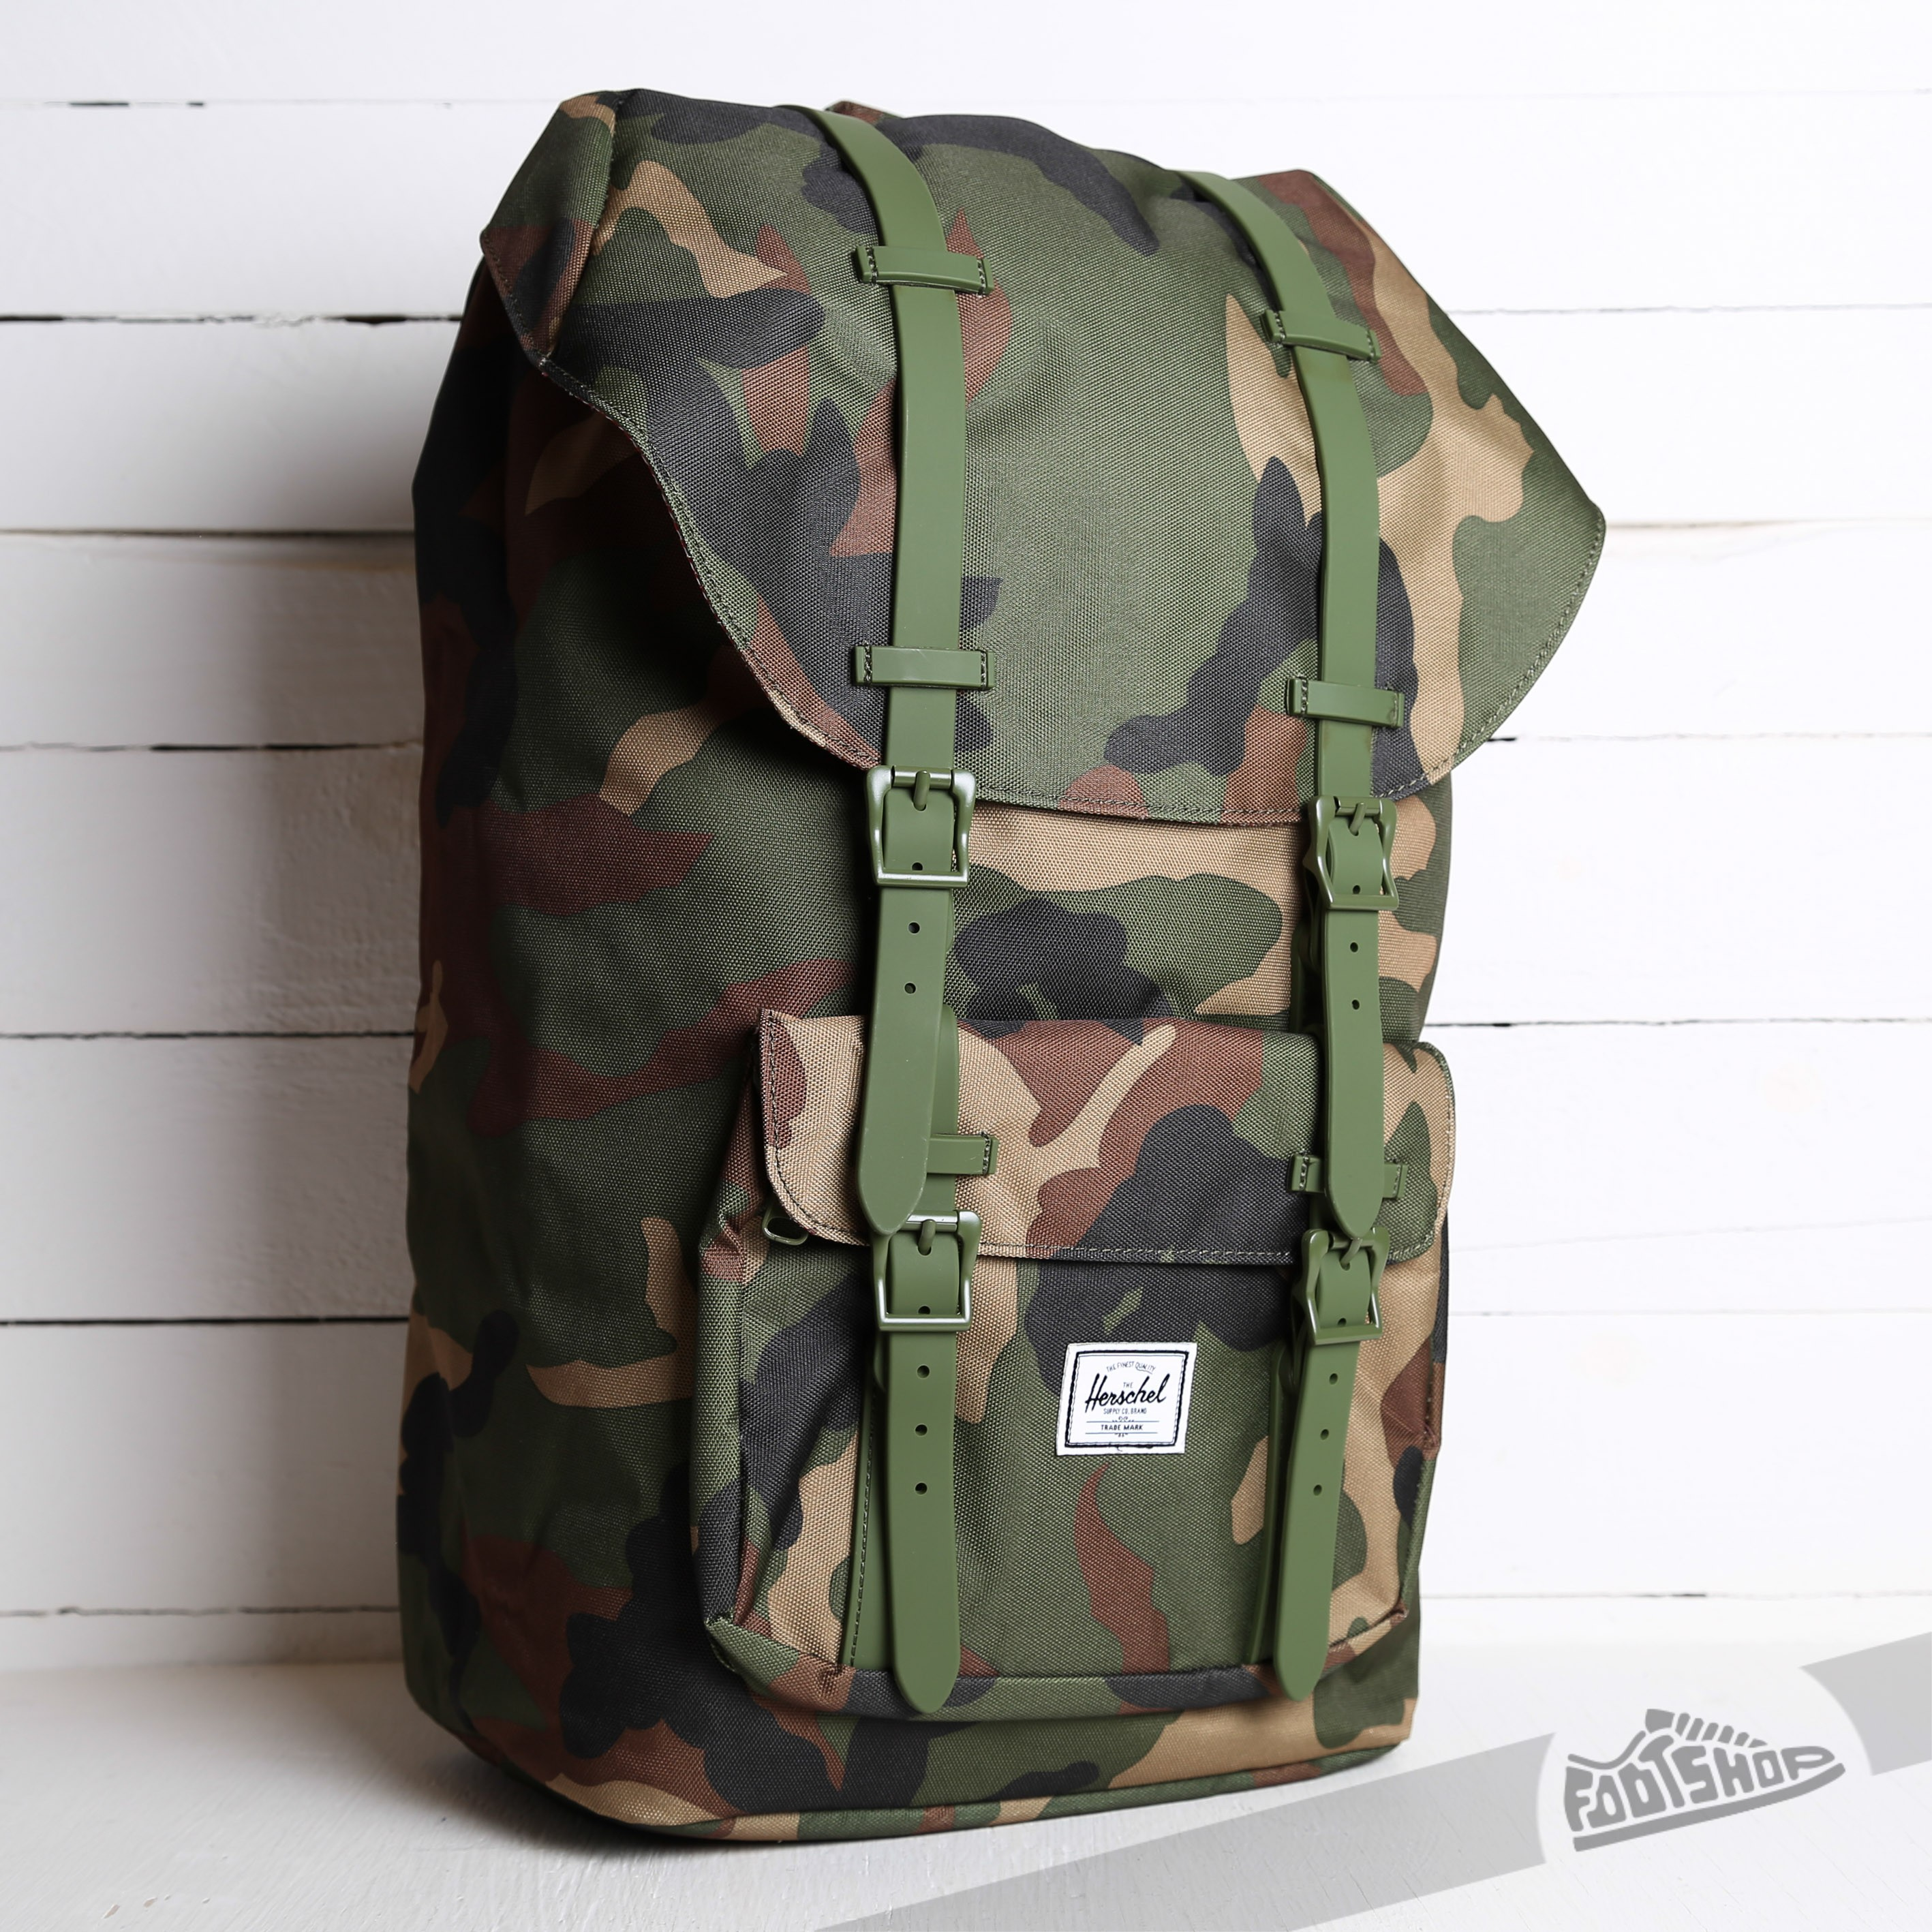 a6d0bdcc103 Herschel Supply Co. Little America Backpack Woodland Camo ...